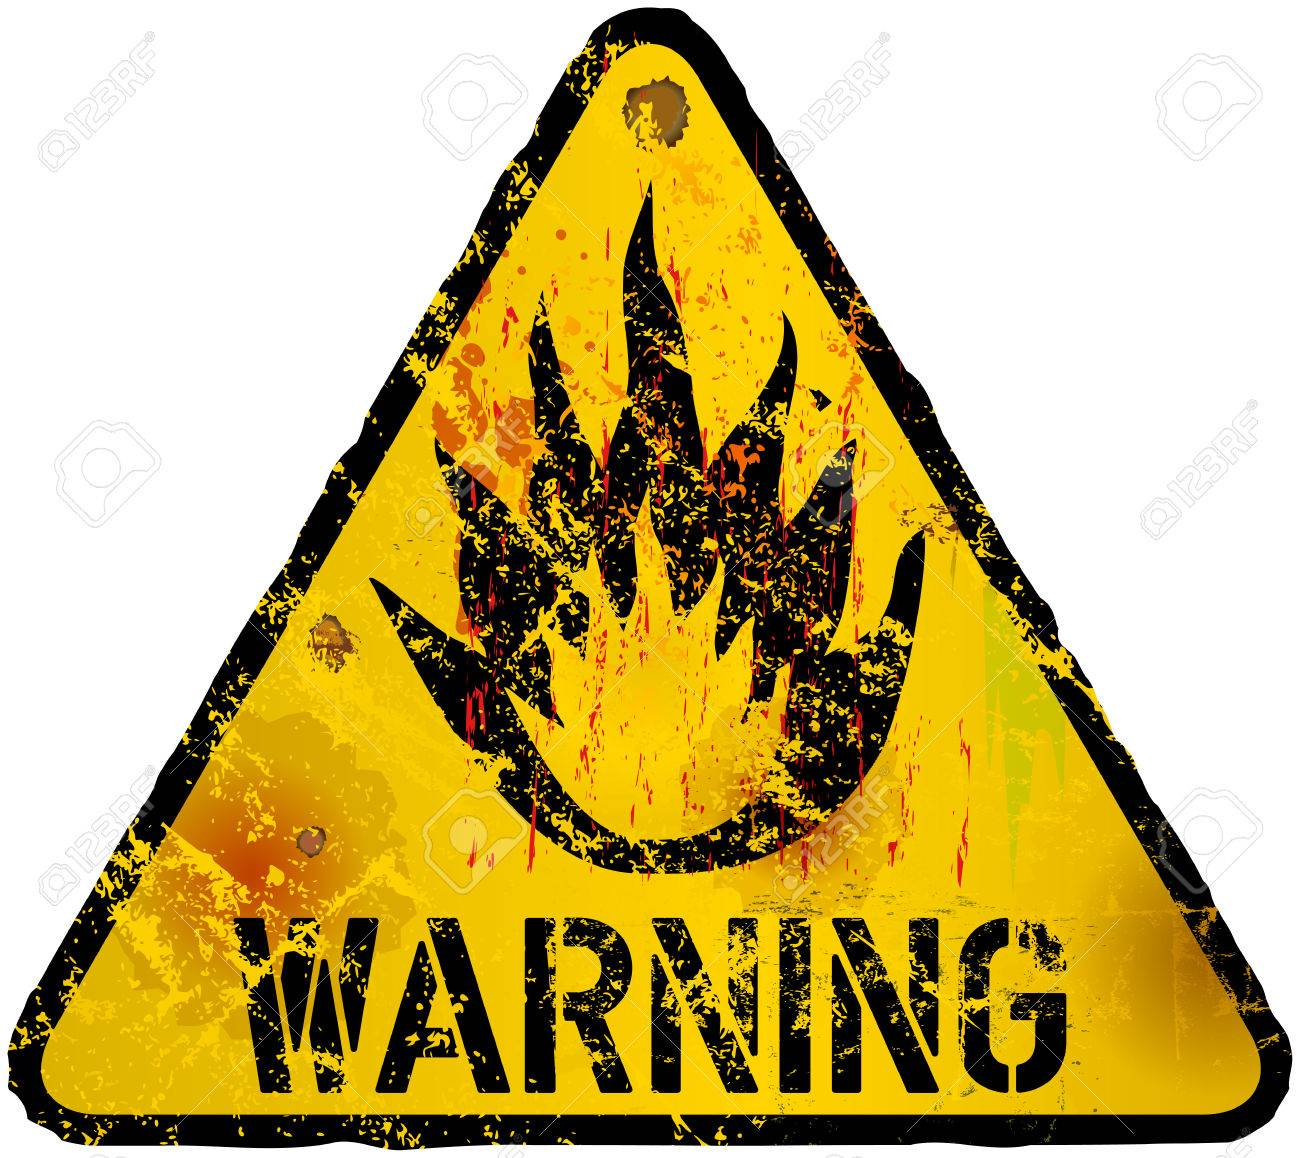 Warning flammable symbol image collections symbol and sign ideas wildfire warning flammable sign fictional artwork grunge style wildfire warning flammable sign fictional artwork grunge style buycottarizona